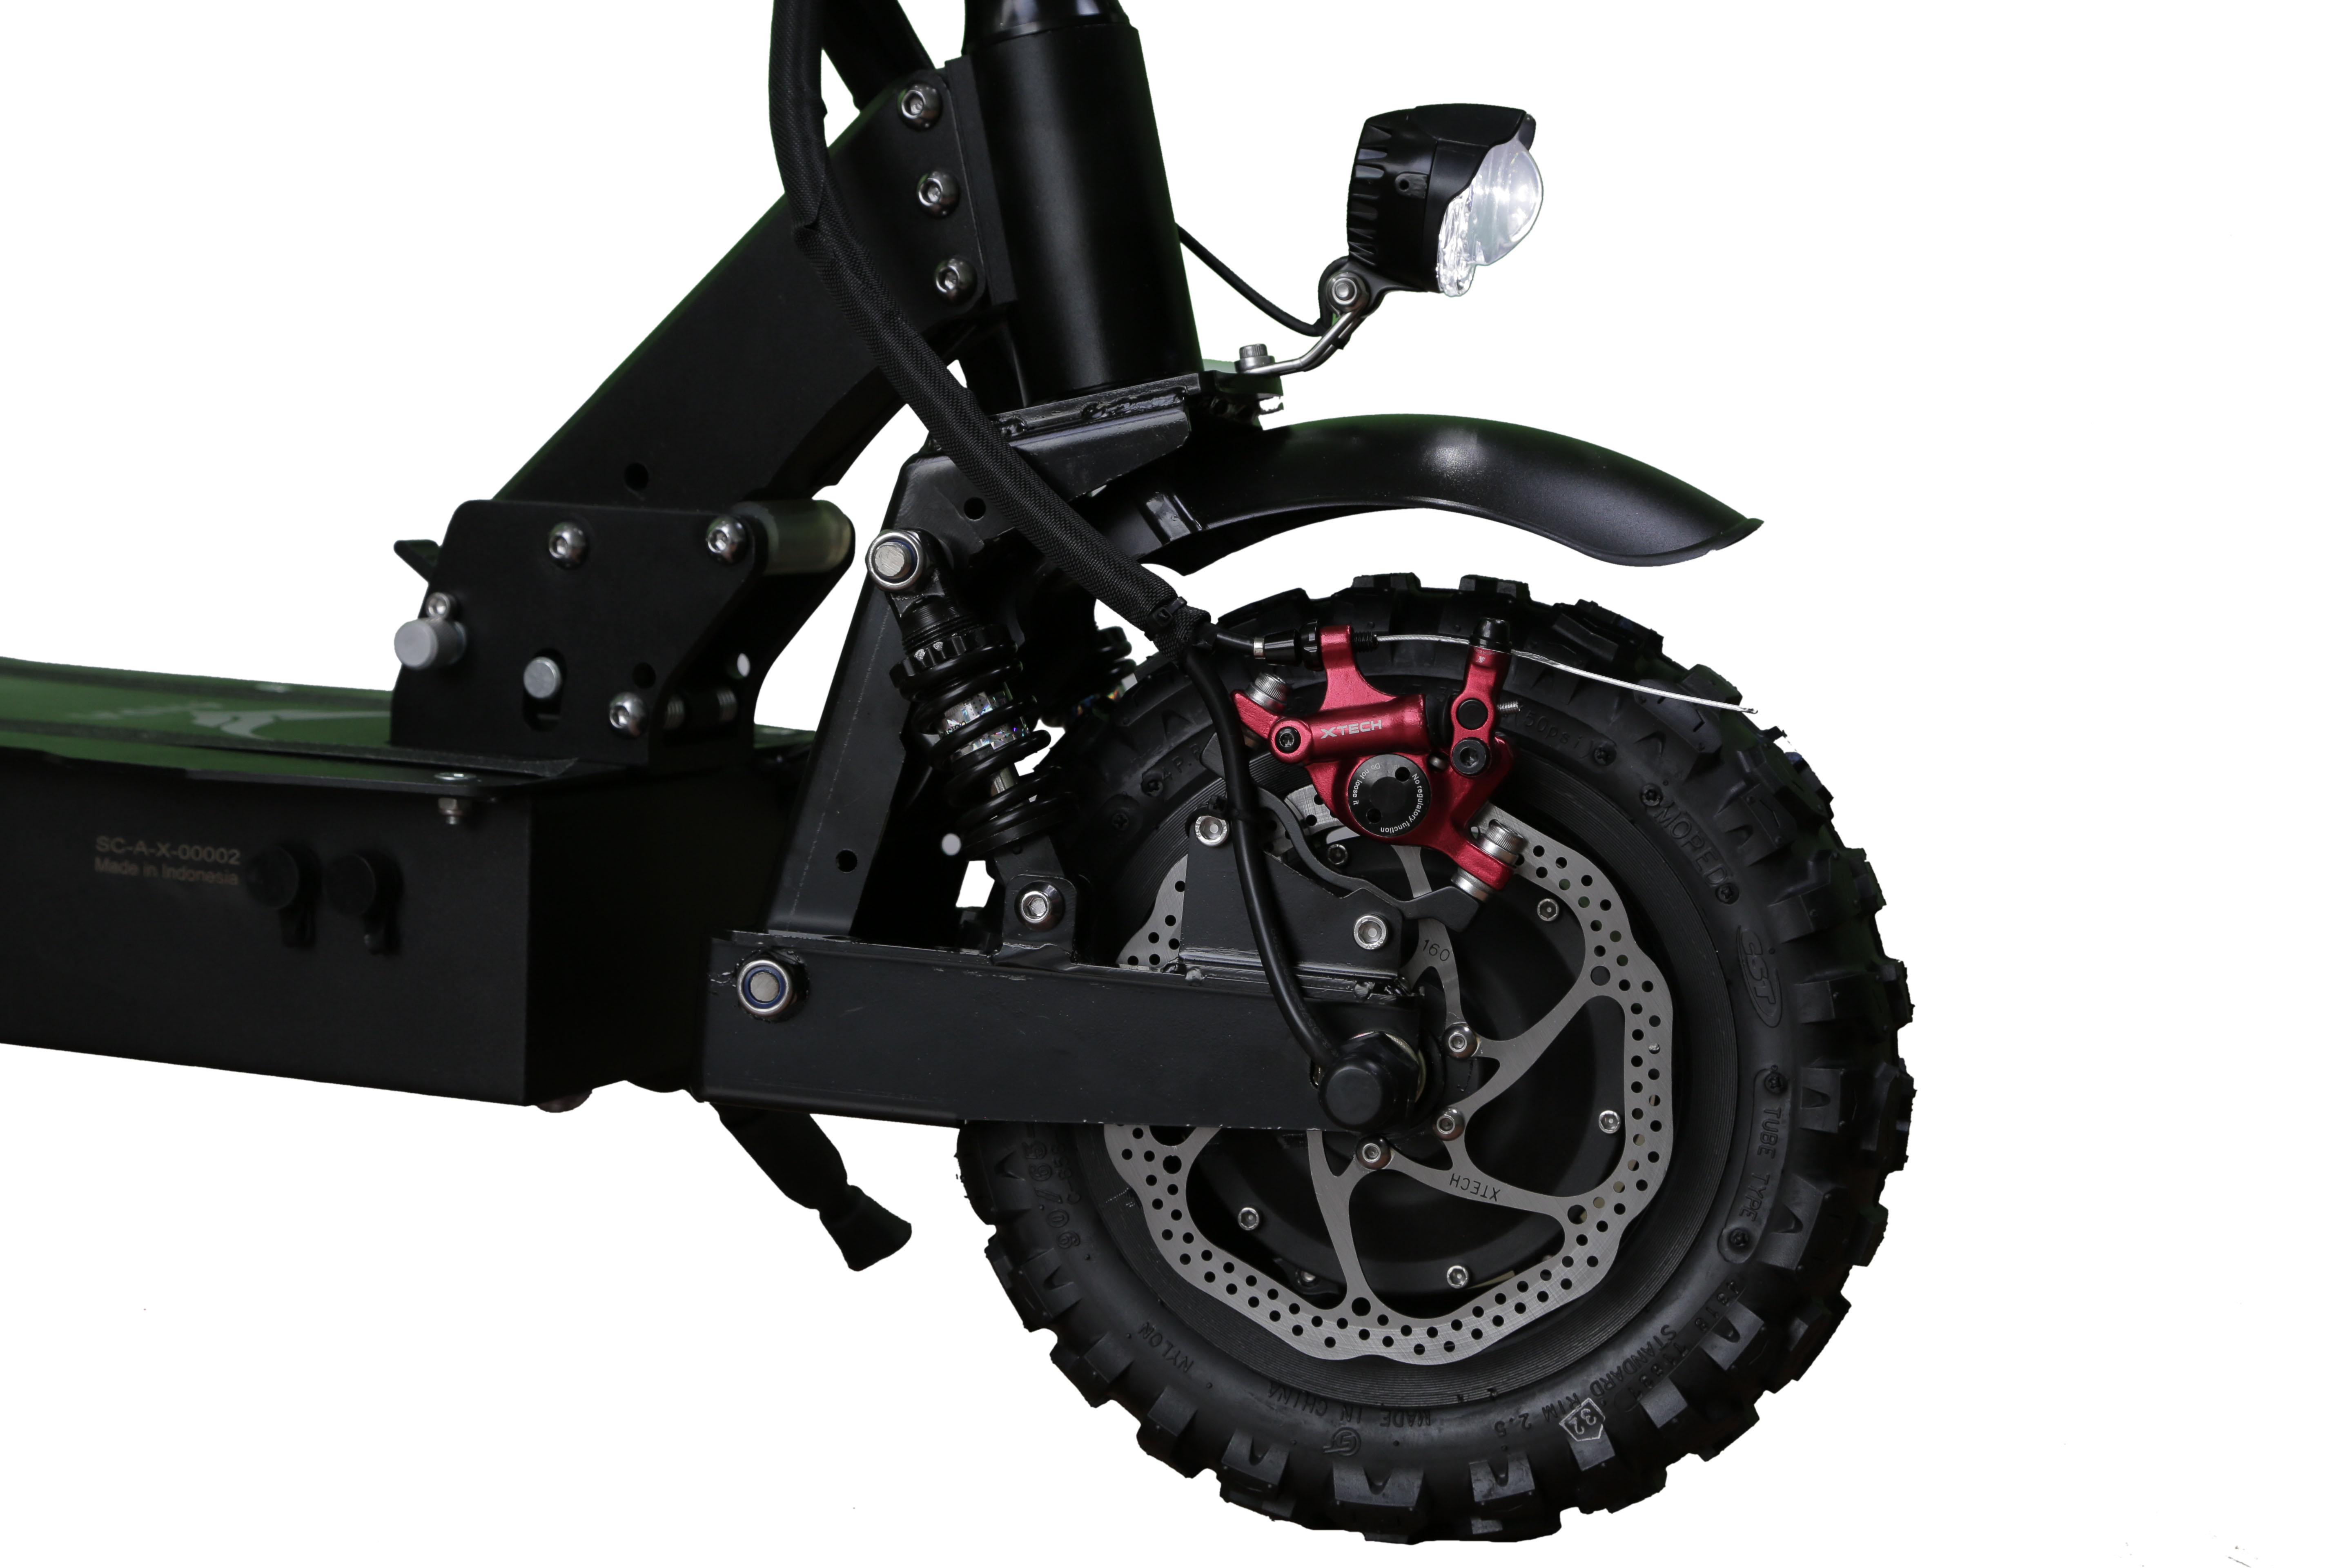 Front tire - Anoa Xtreme